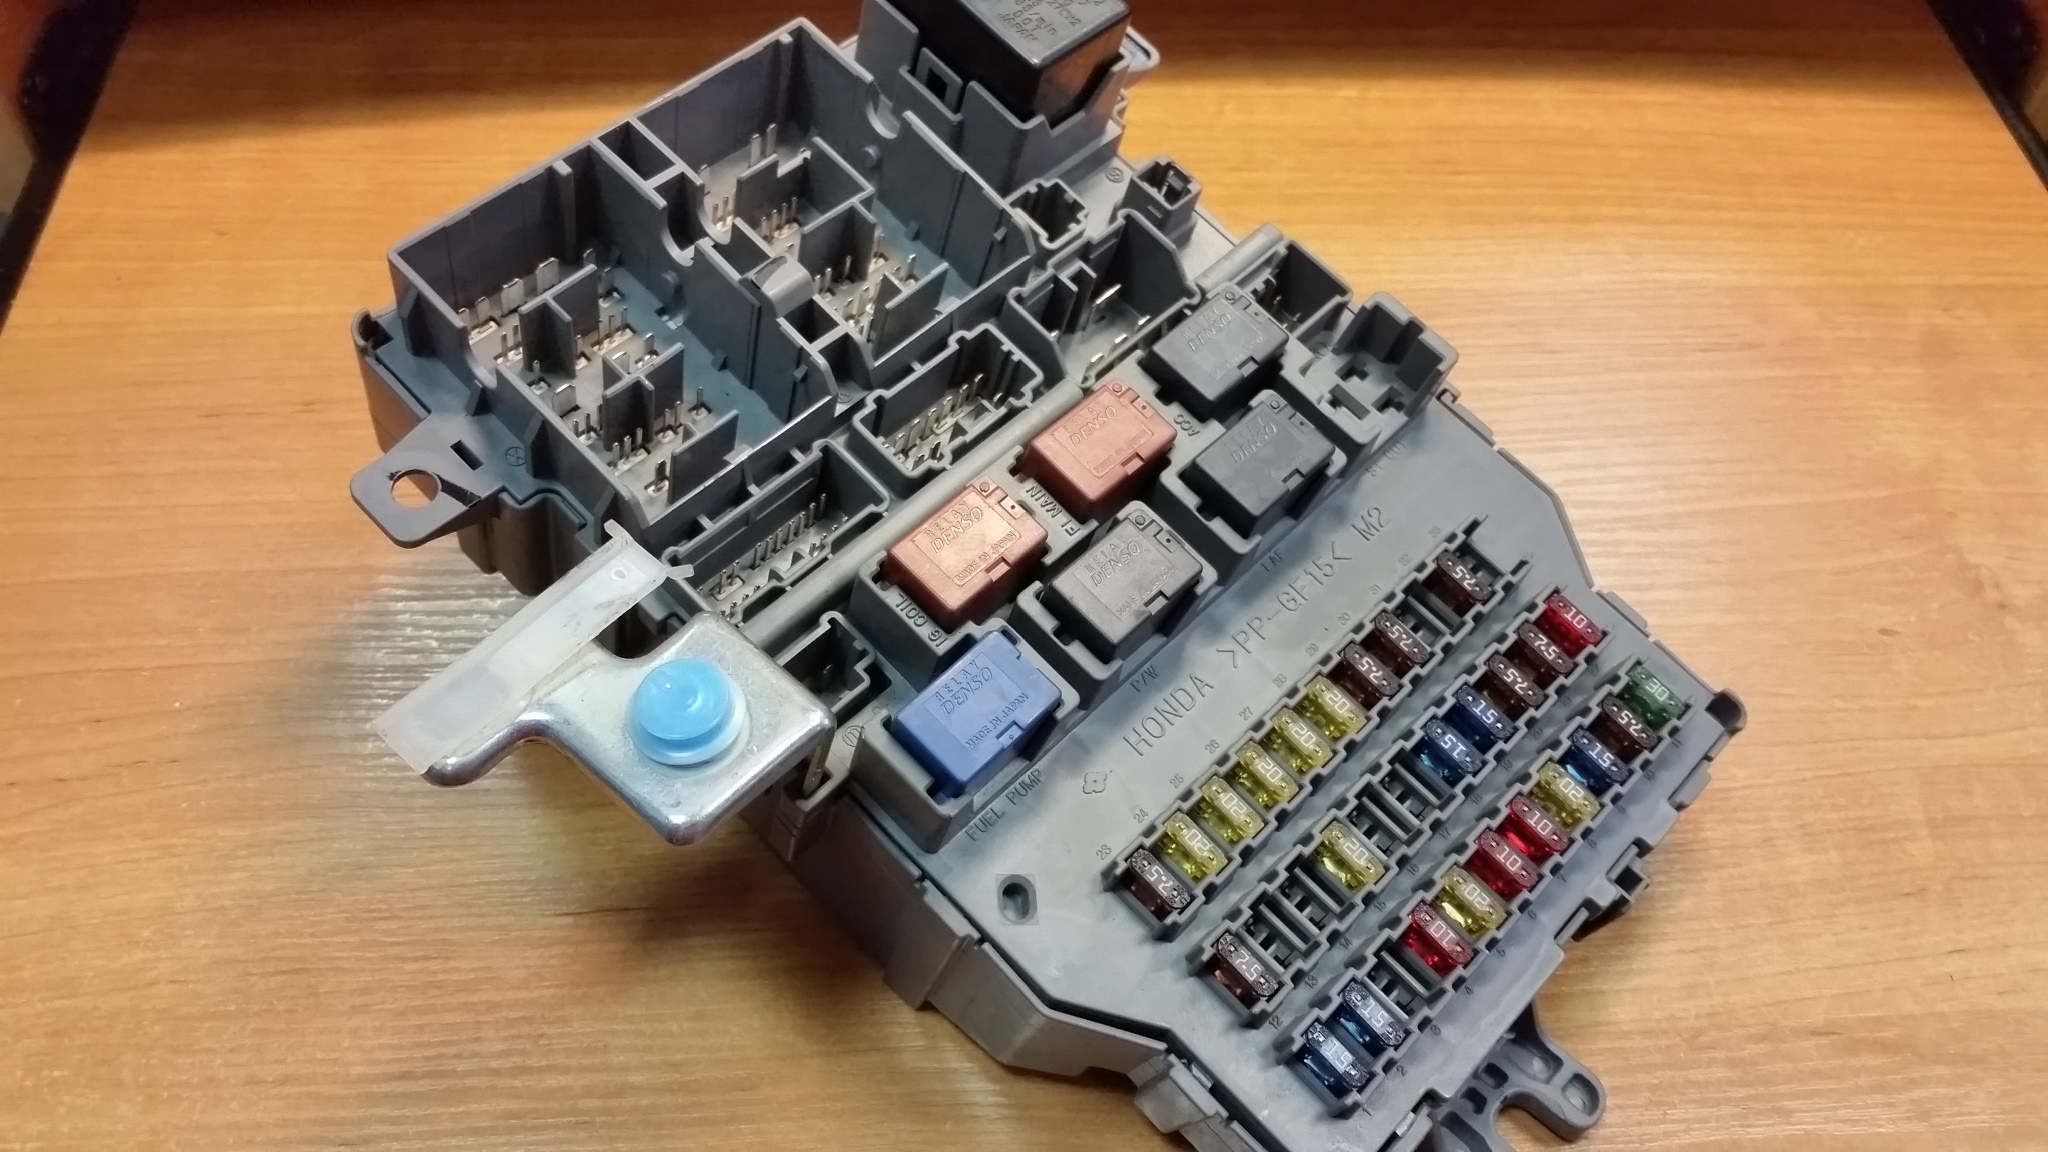 honda fuse box price honda accord 2004 fuse box  xe207loj  111802 usedecus com  honda accord 2004 fuse box  xe207loj